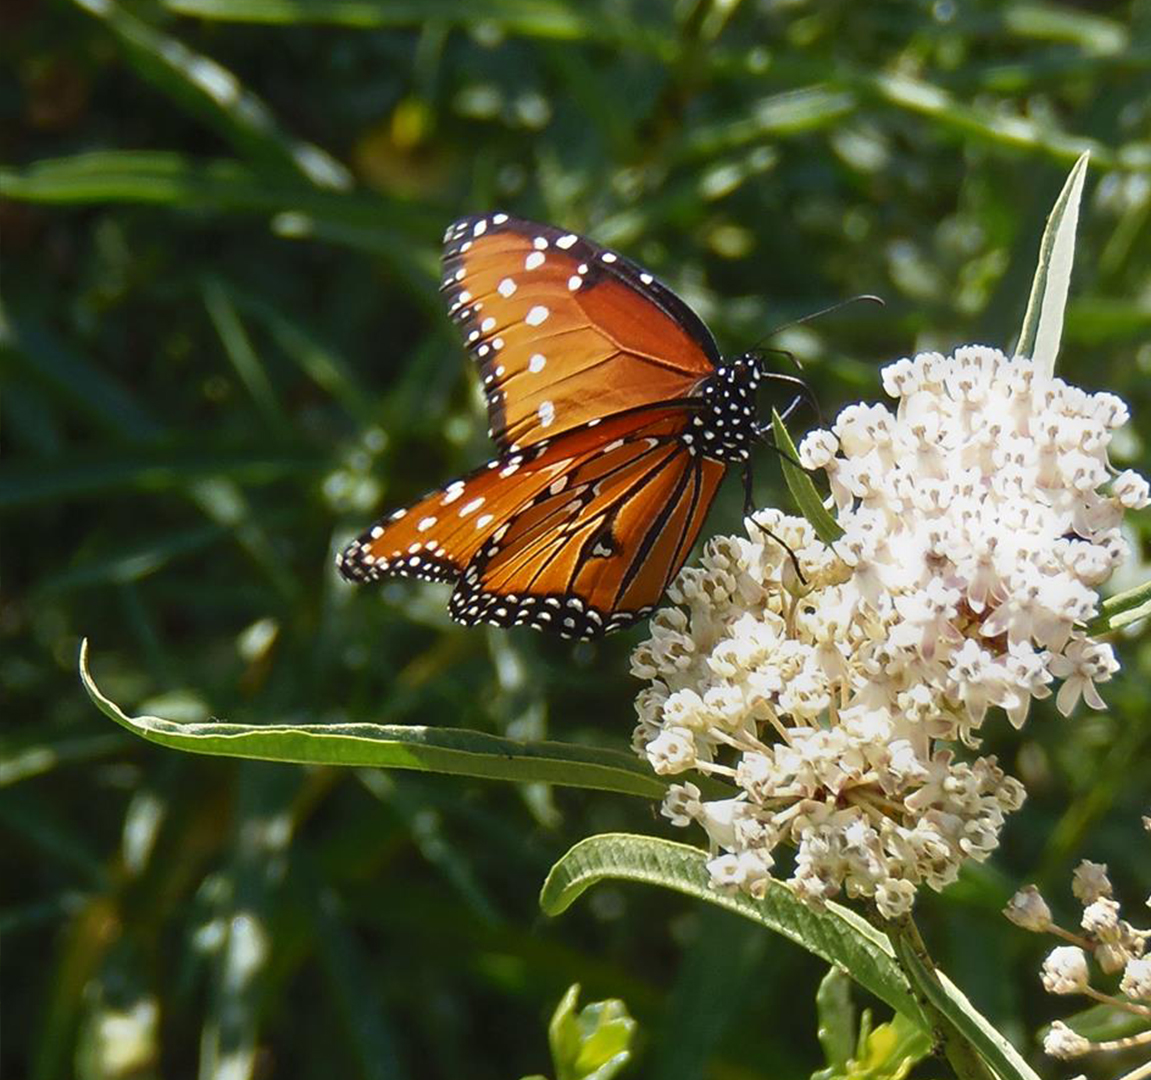 A close relative of the Monarch is the Queen Butterfly